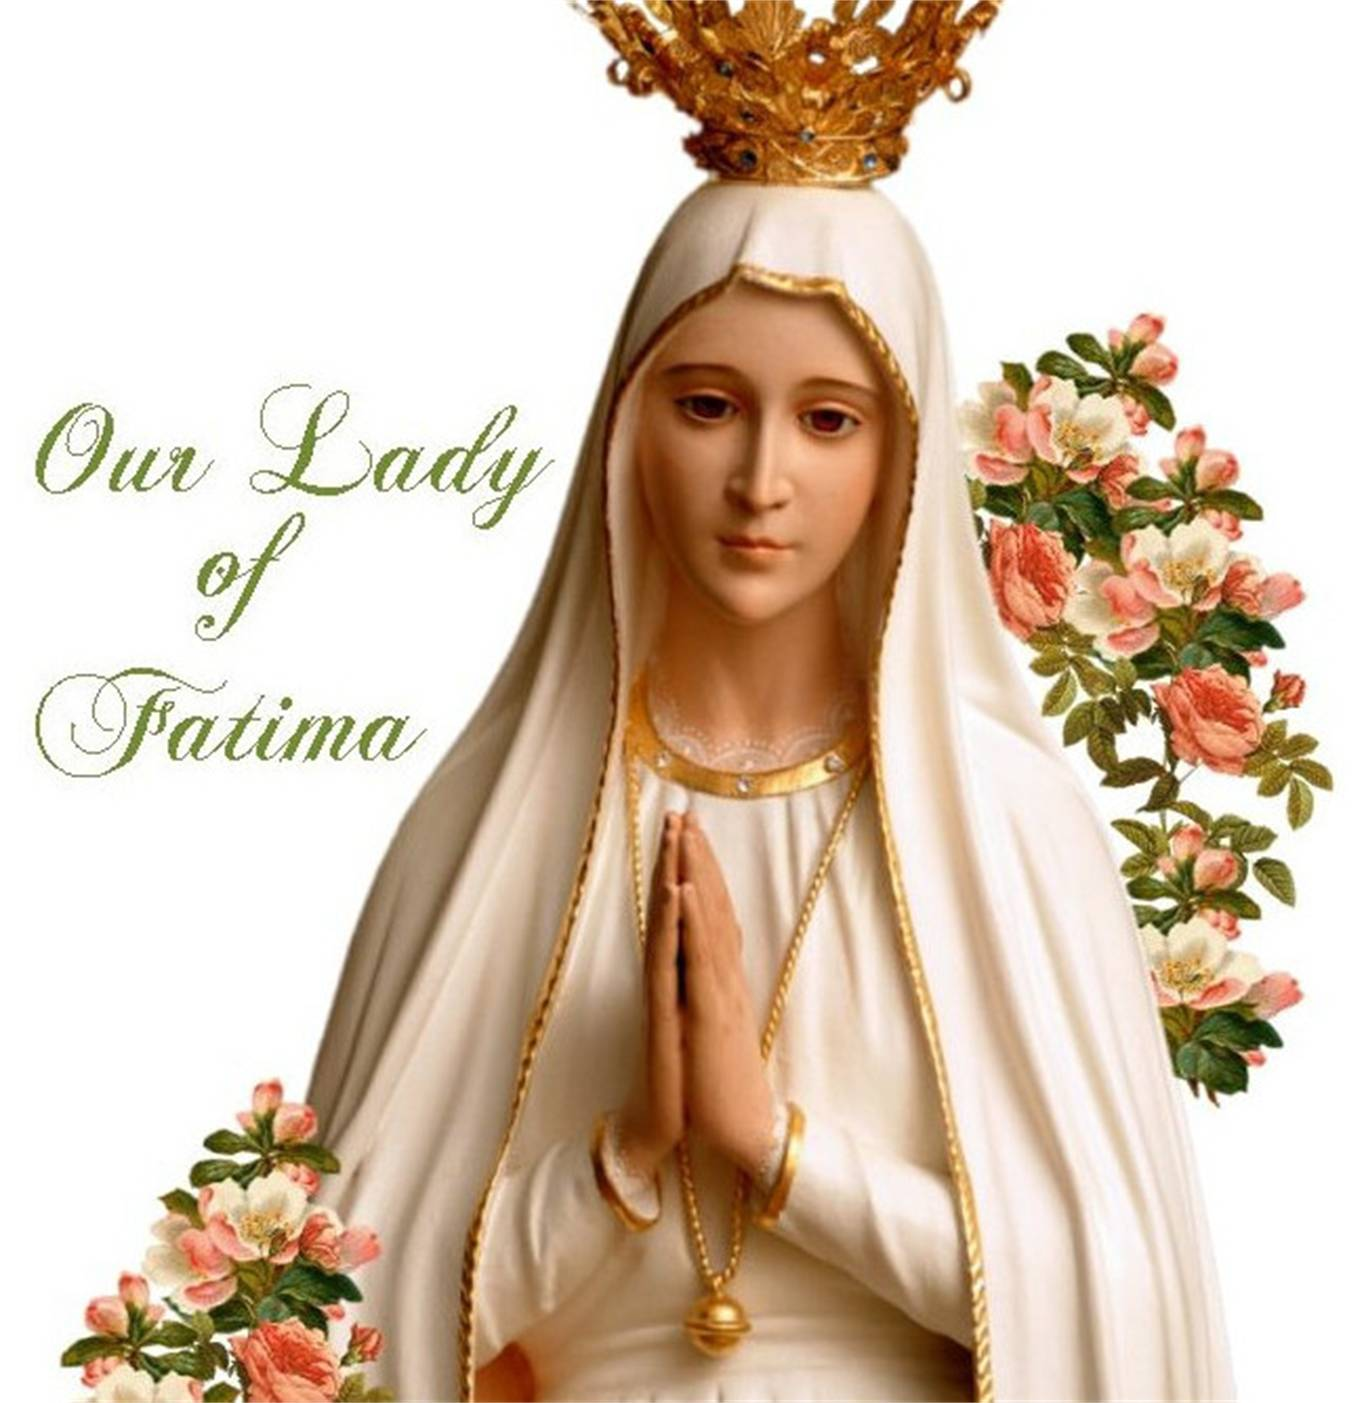 Our Lady of Fatima : Pray the Rosary